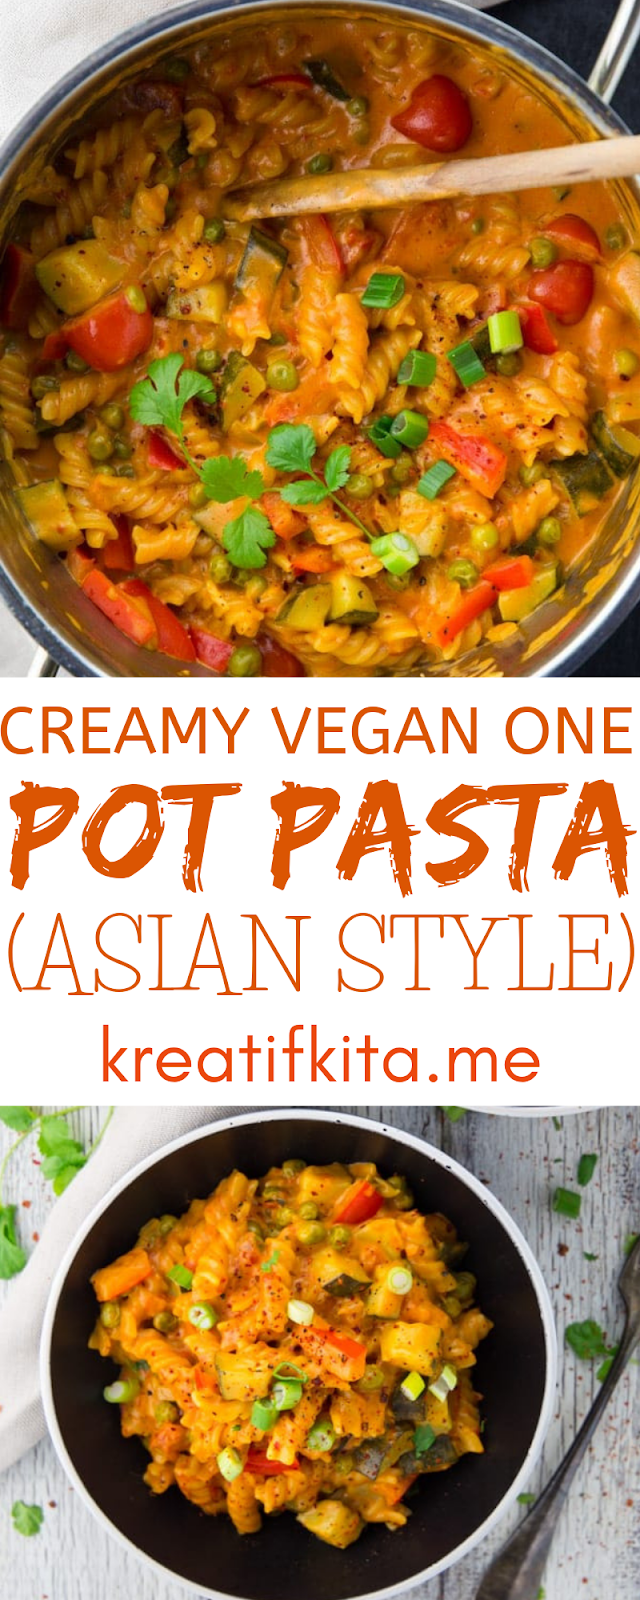 CREAMY VEGAN ONE POT PASTA (ASIAN STYLE)